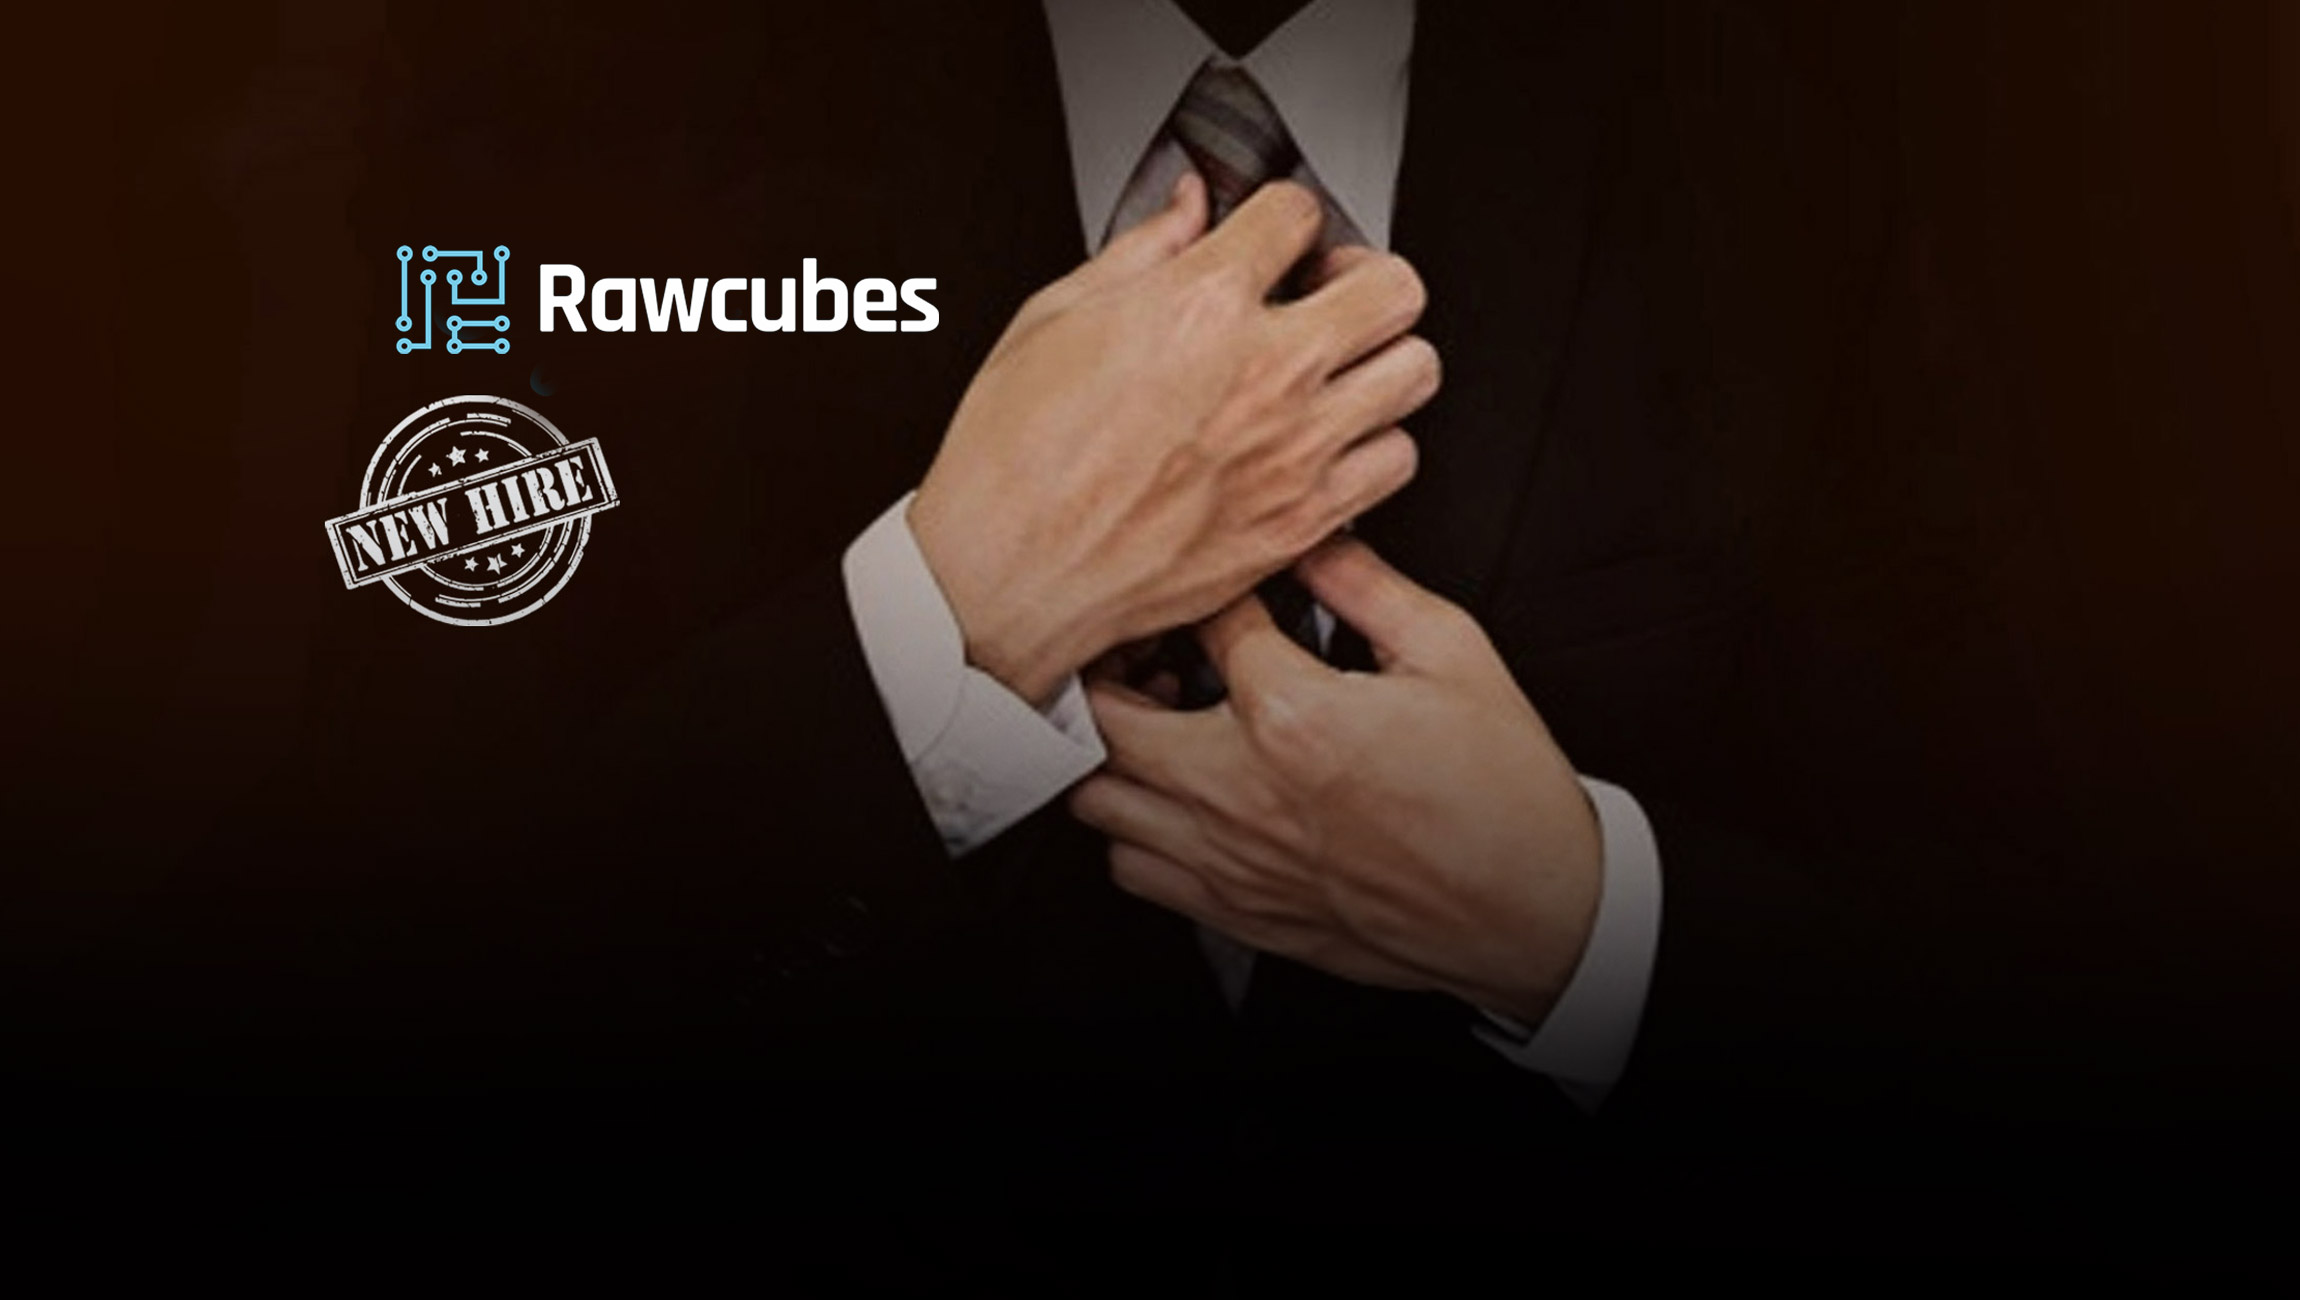 Mark Andeer Joins Rawcubes as Head of Sales and Marketing